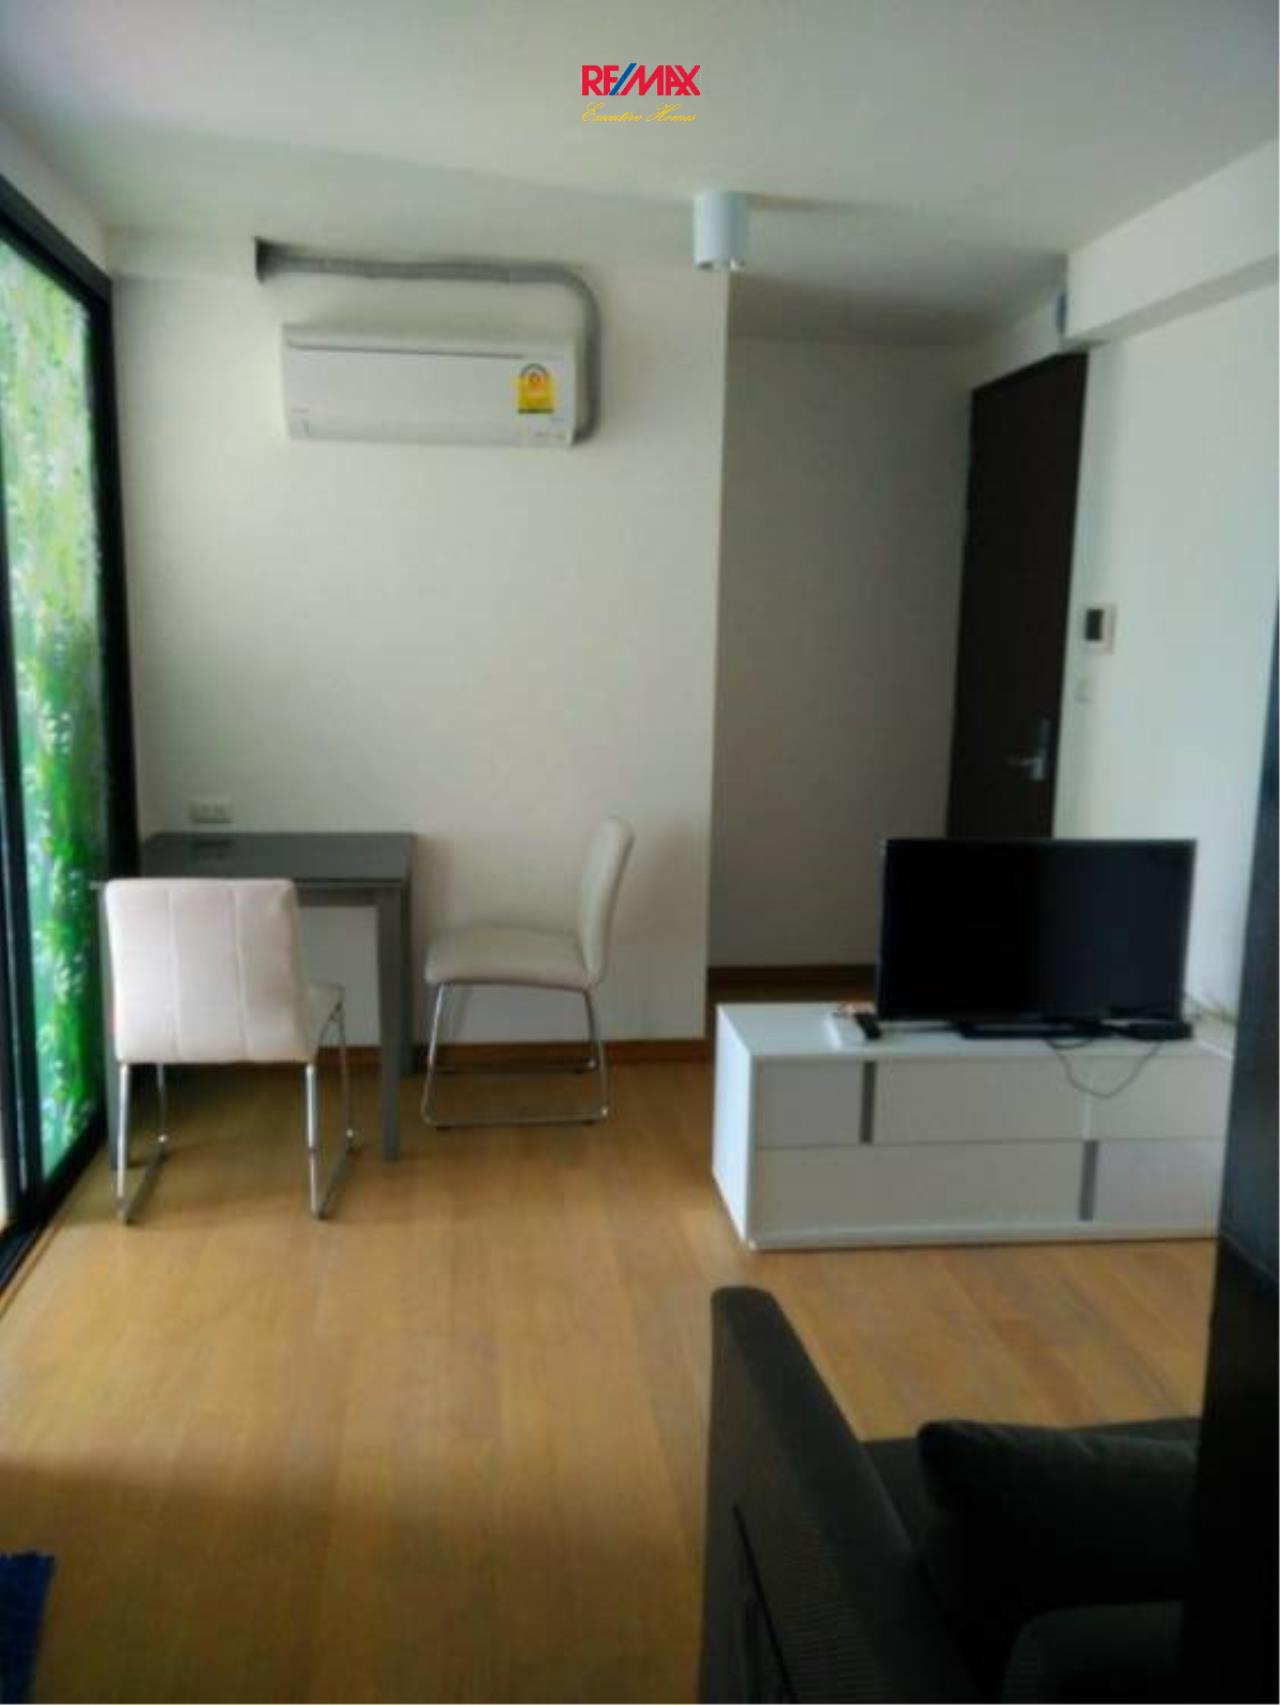 RE/MAX Executive Homes Agency's Nice 1 Bedroom for Rent and Sale Bangkok Feliz 69 10